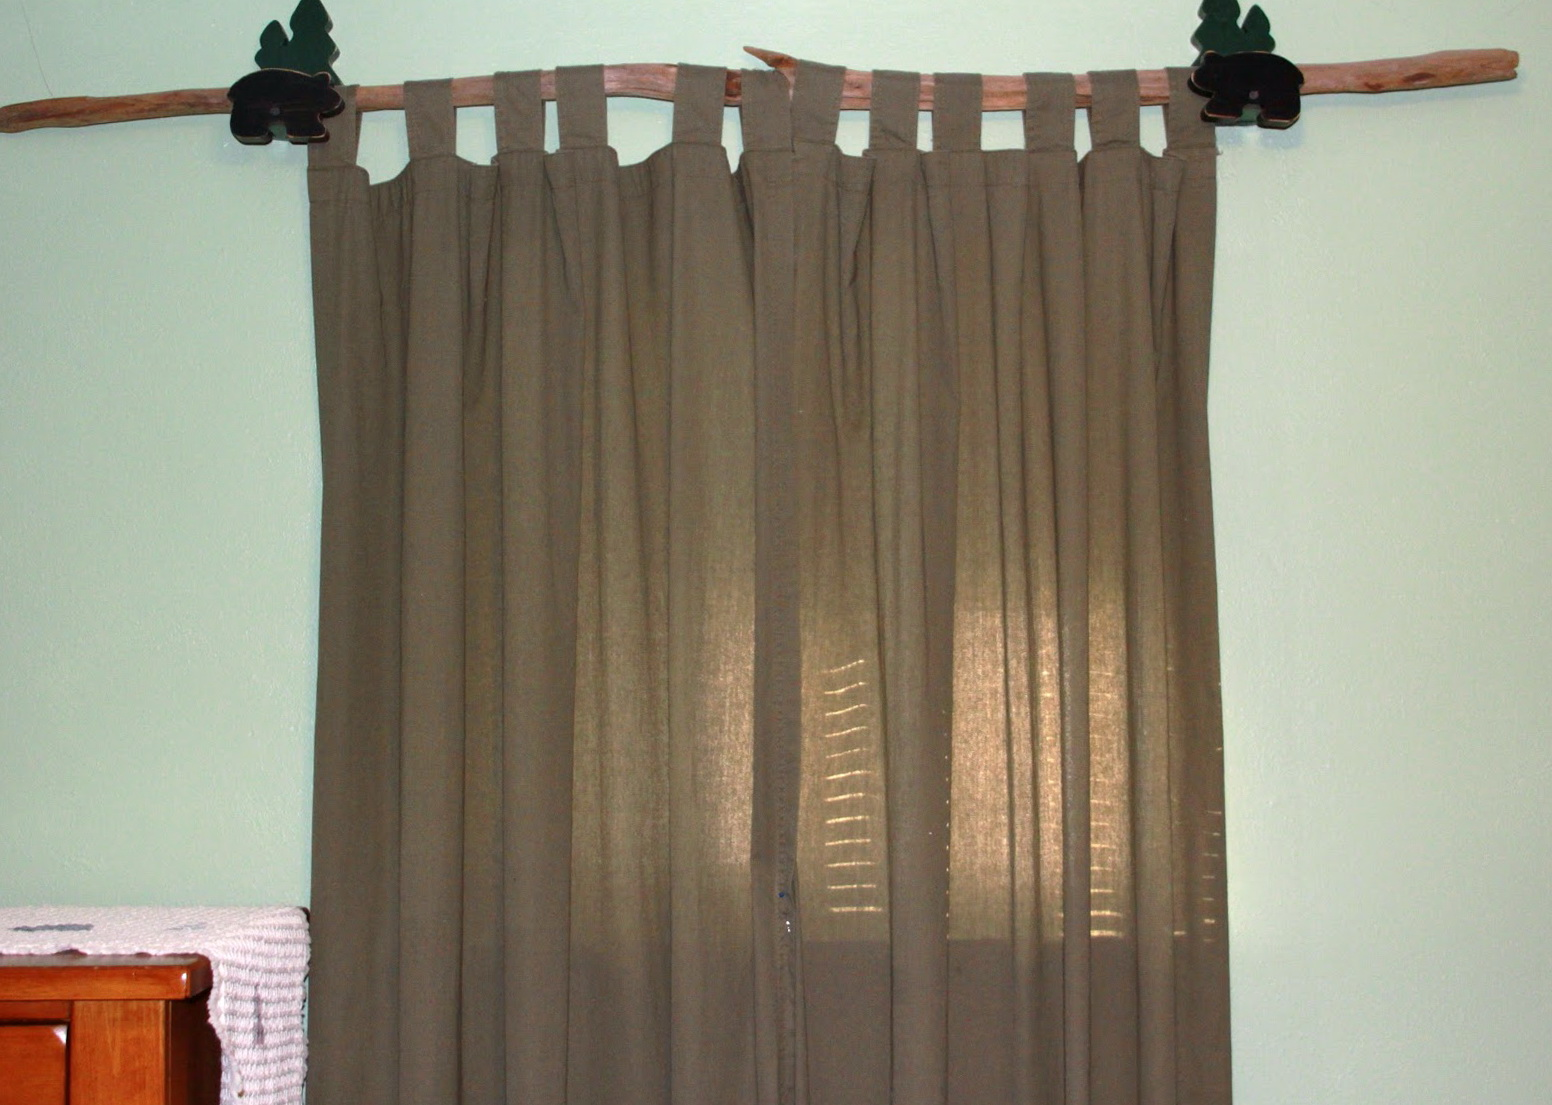 Ikea Shower Curtains Industrial Curtain Rod Ideas | Home Design Ideas